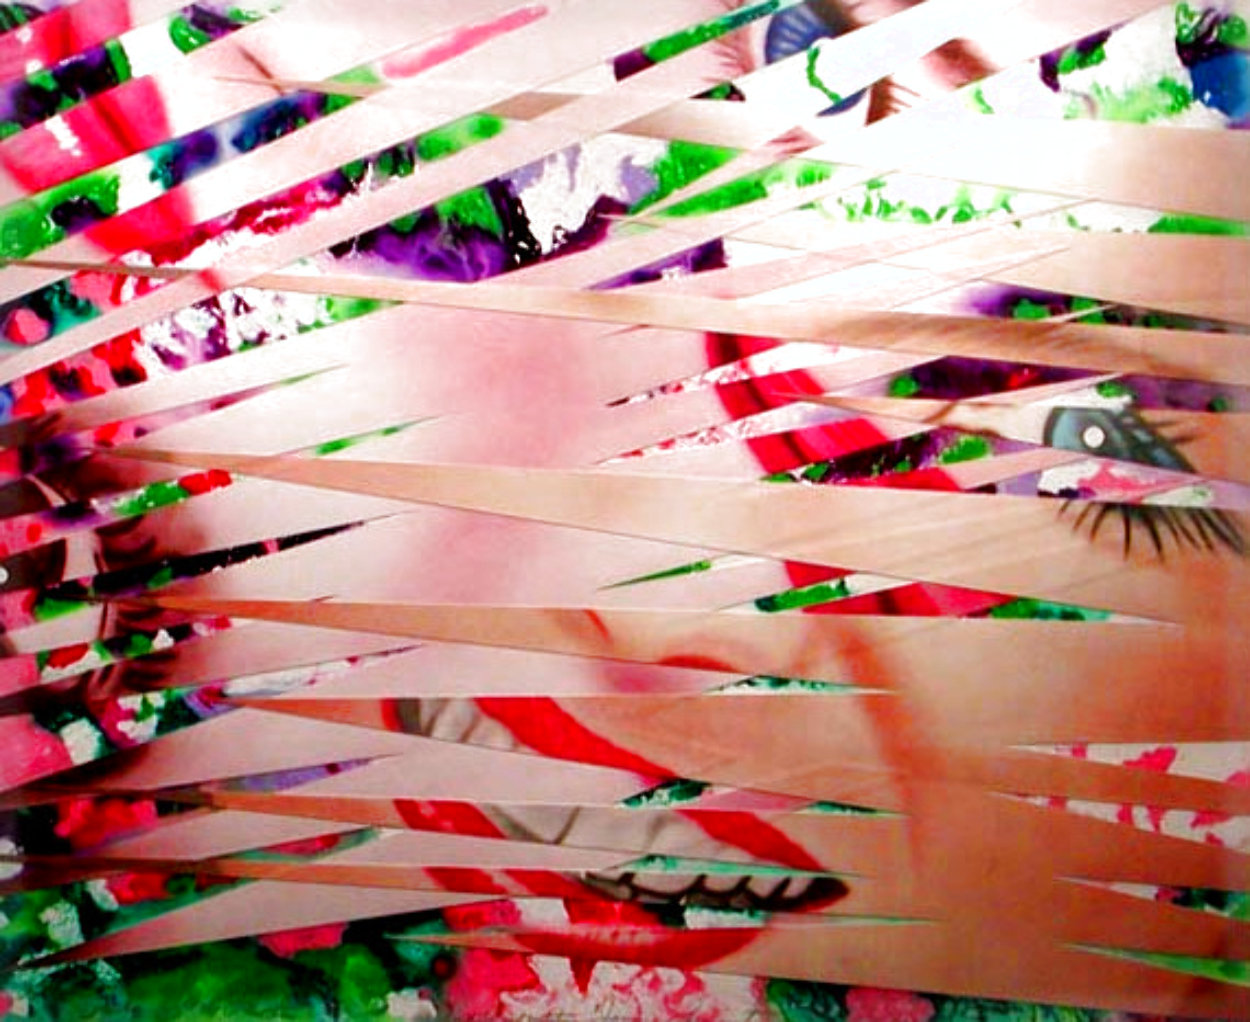 Crosshatch and Mutation 1986 42x55 Huge Works on Paper (not prints) by James Rosenquist